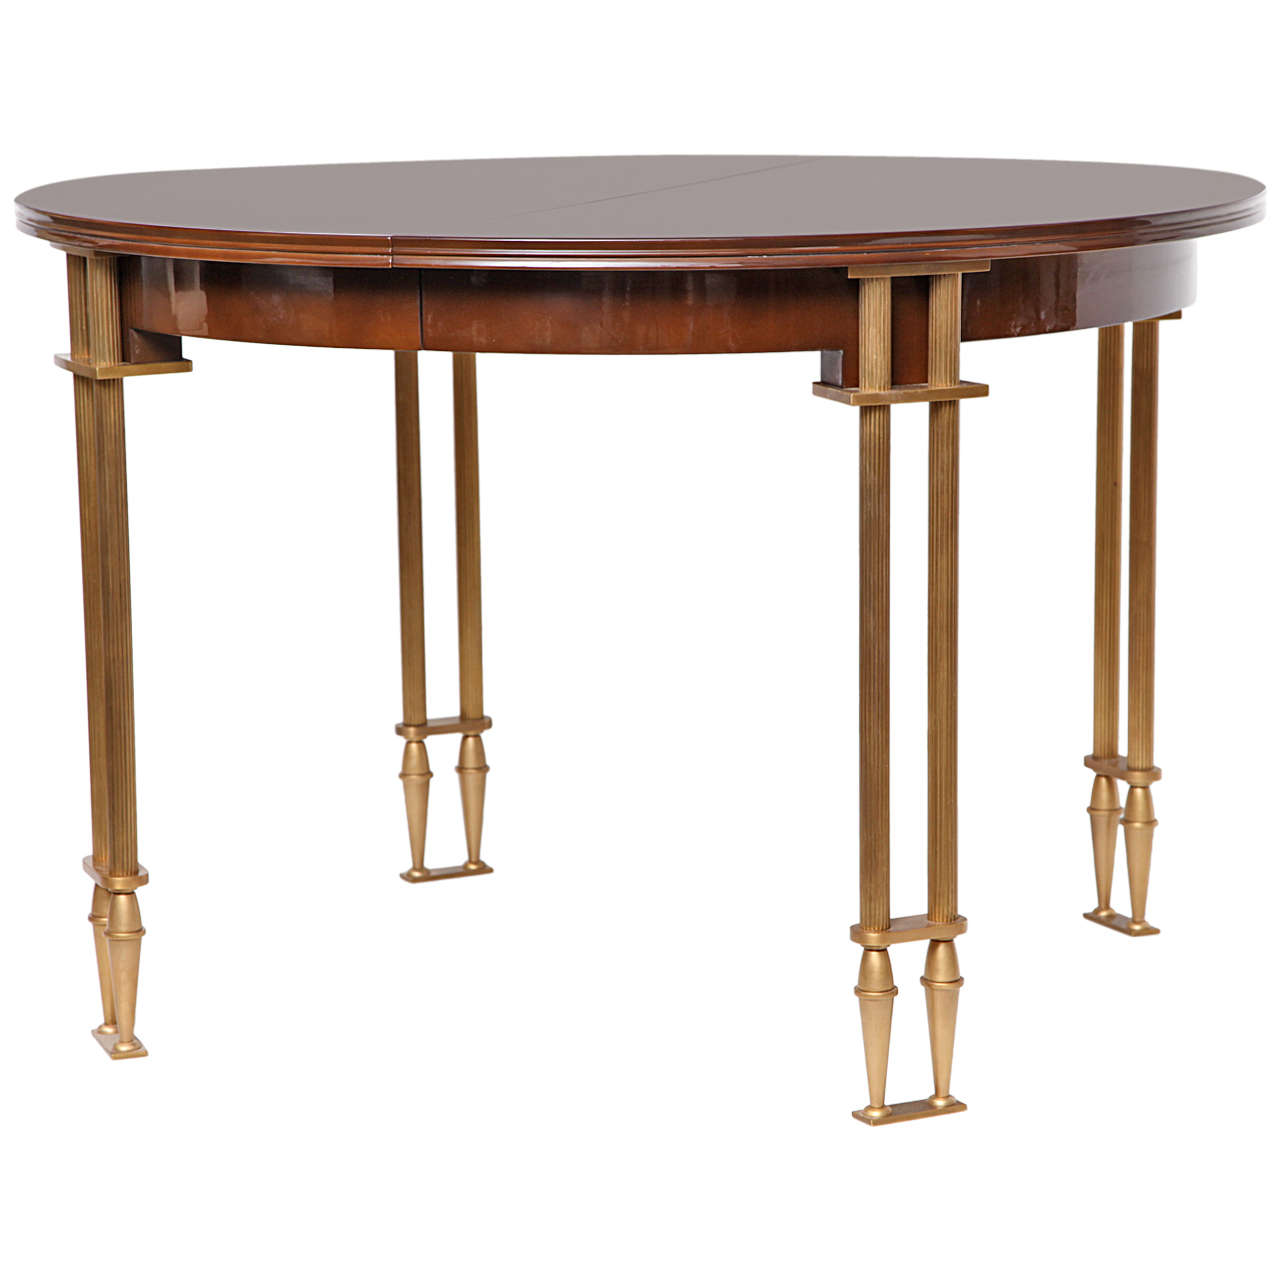 Fine Dining Room Tables: Fine Extension Dining Table By Maison Leleu At 1stdibs